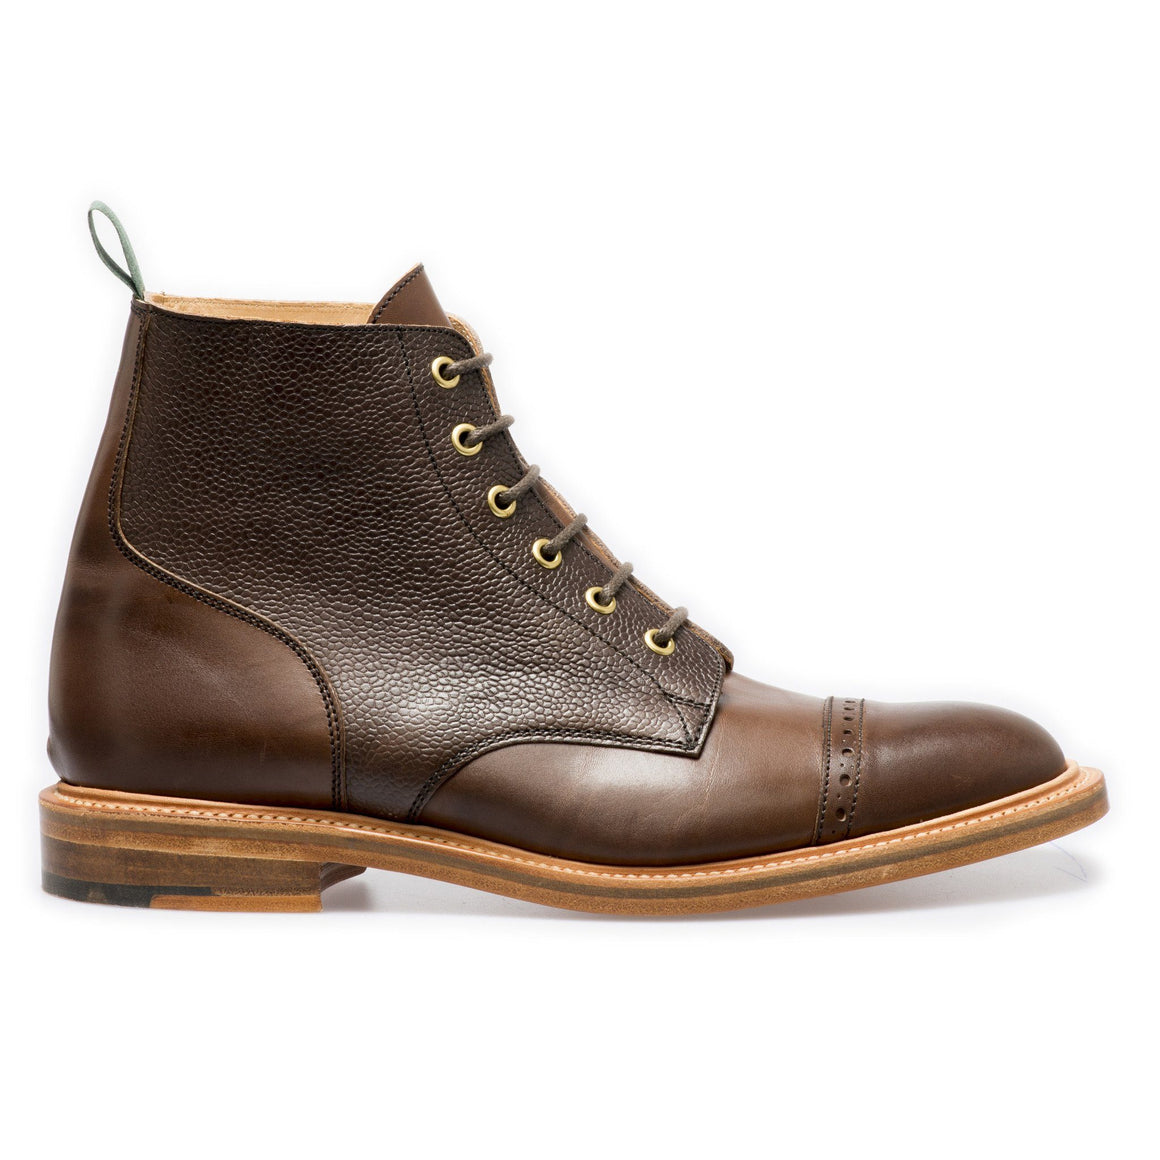 NPS EDEN Derby Straight Cap Boots - Walnut Grain